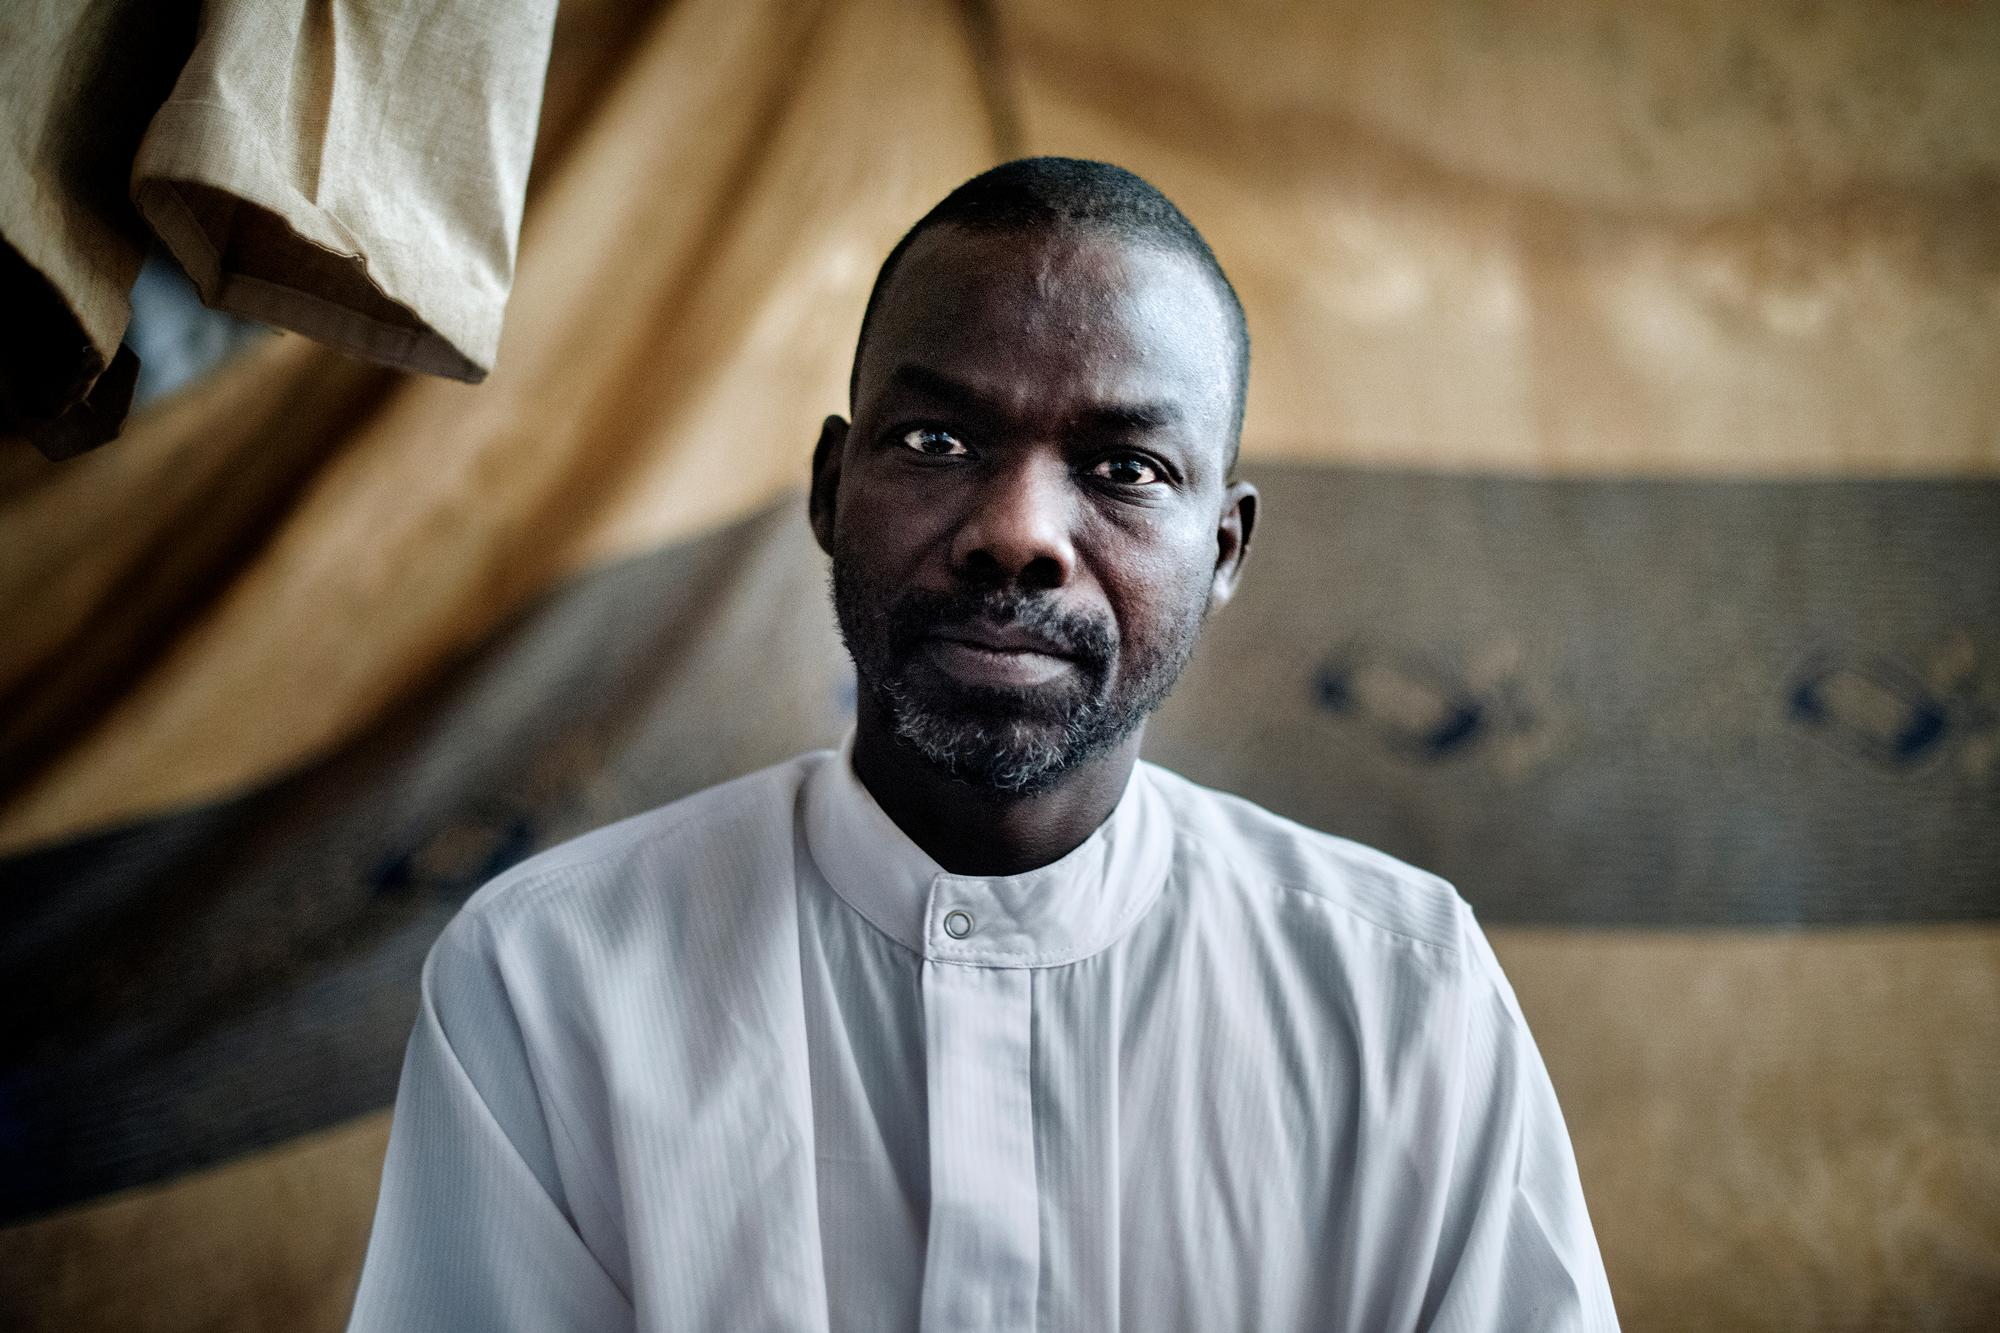 Photo Story: Central African Republic: No hope of returning home anytime soon